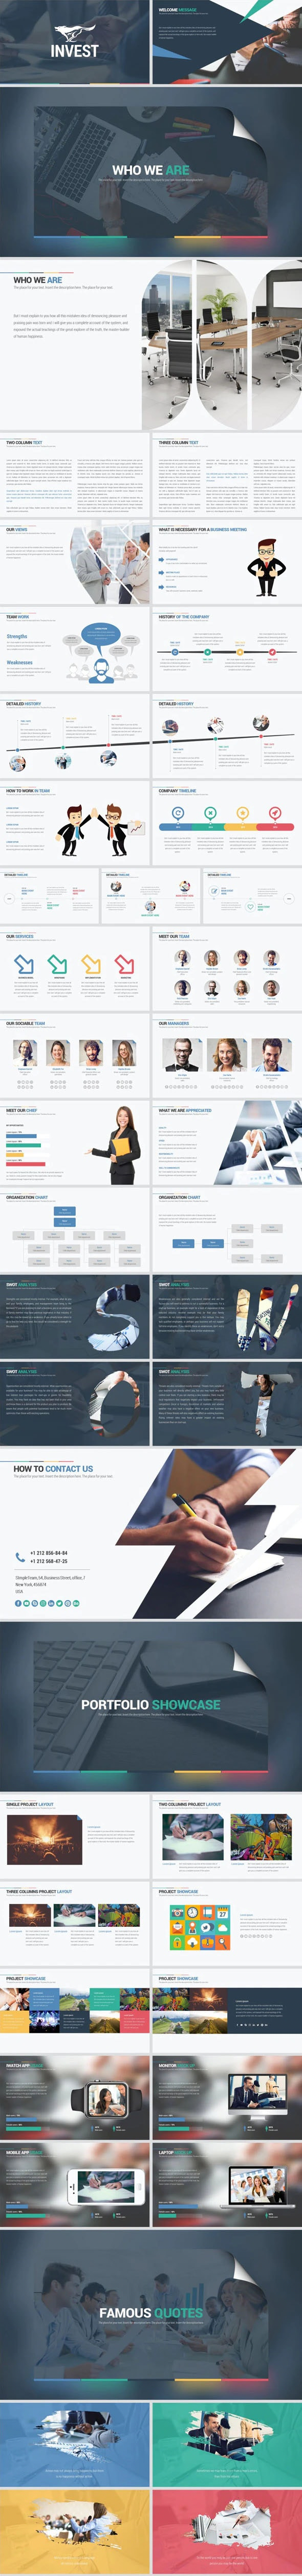 Invest Keynote Template System - Business Keynote Templates